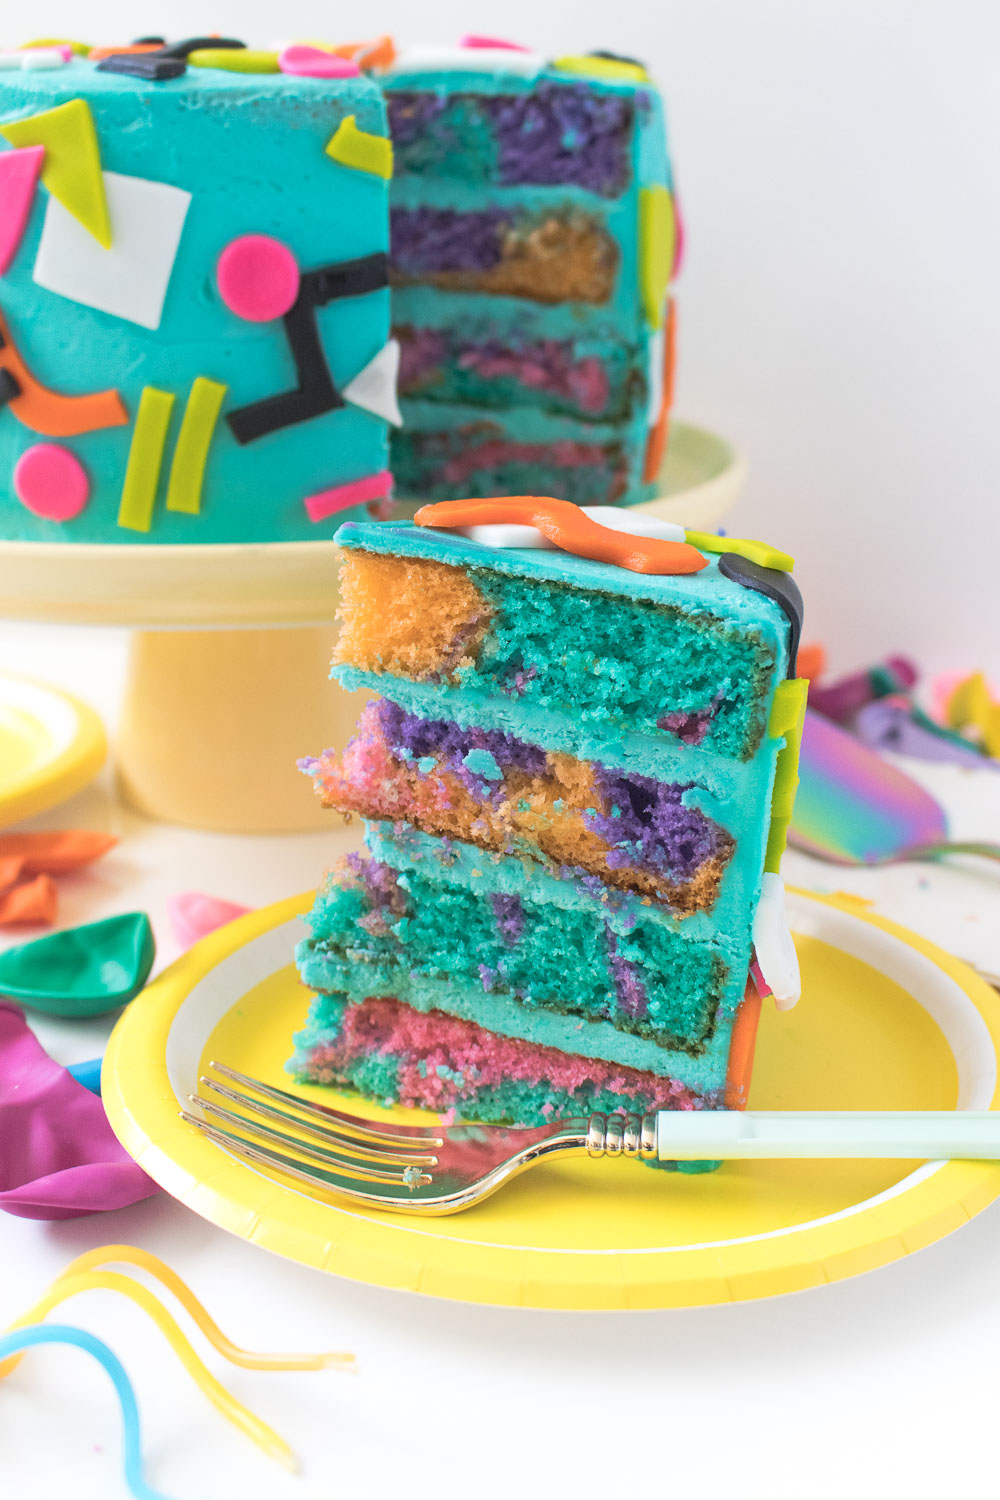 90s Throwback Layer Cake | Club Crafted